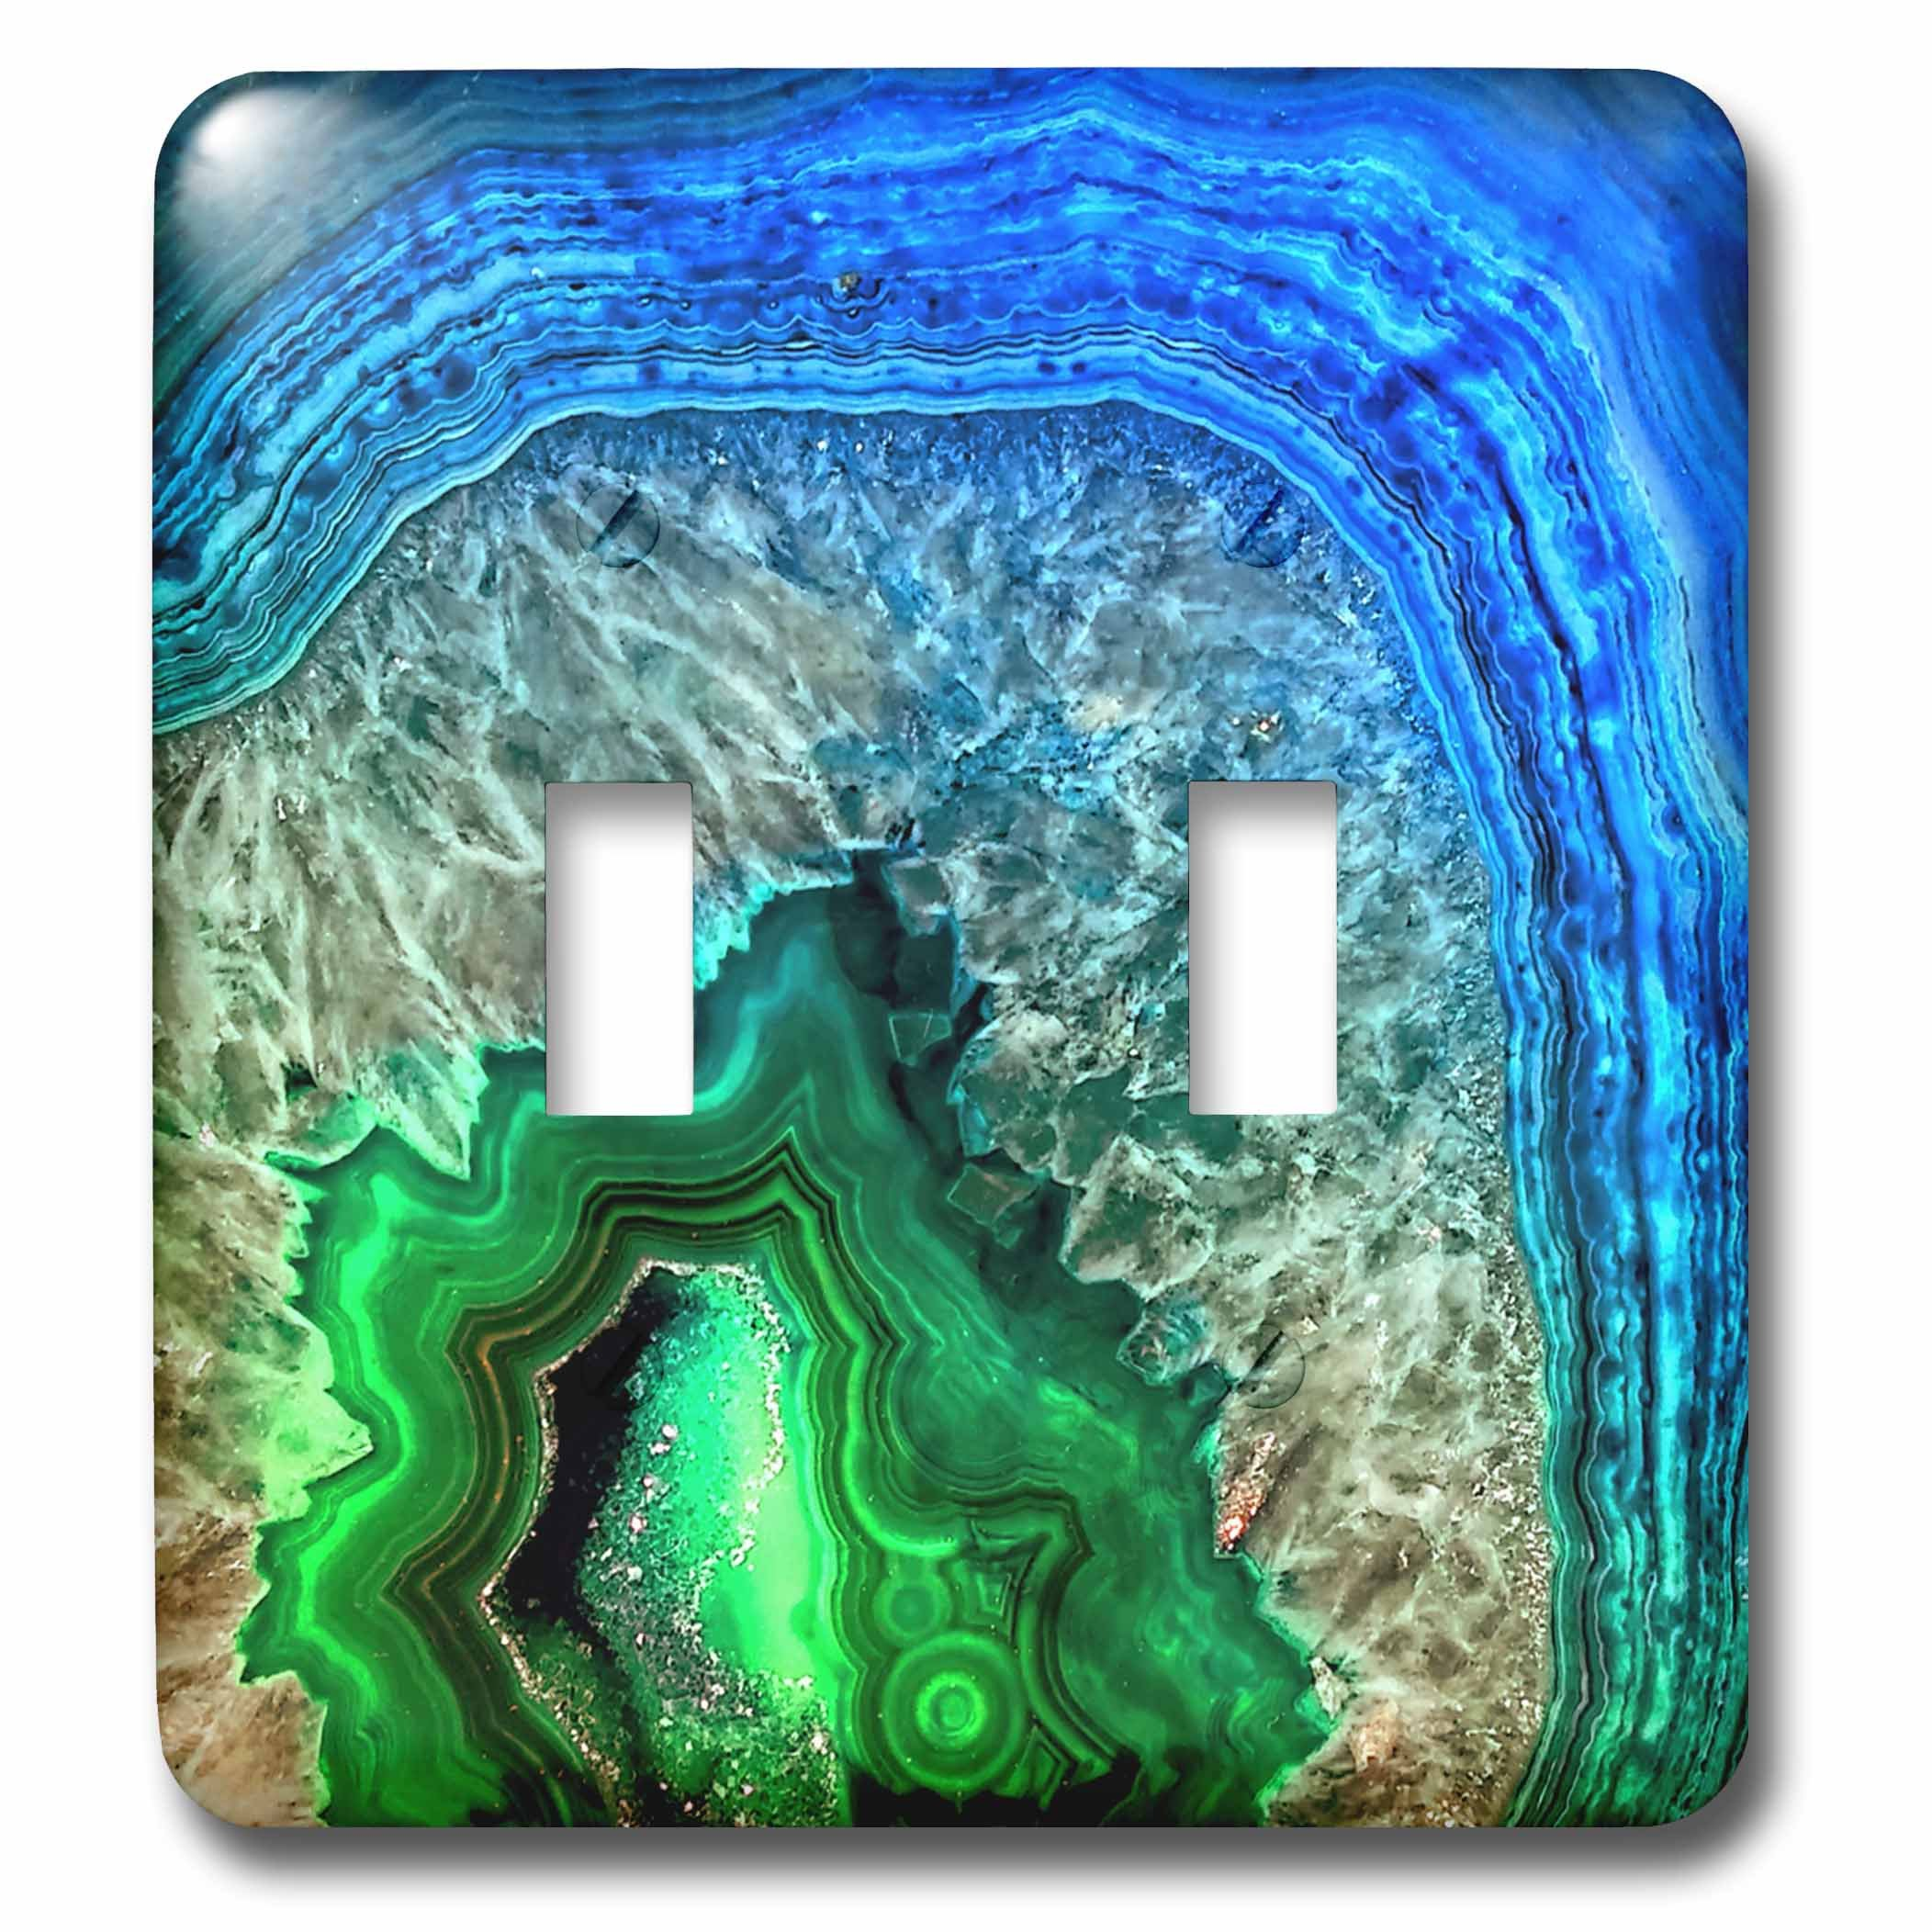 3dRose Uta Naumann Pattern - Image of Luxury Indigo and Green Marble Agate Gem Mineral Stone - Light Switch Covers - double toggle switch (lsp_274959_2) by 3dRose (Image #1)